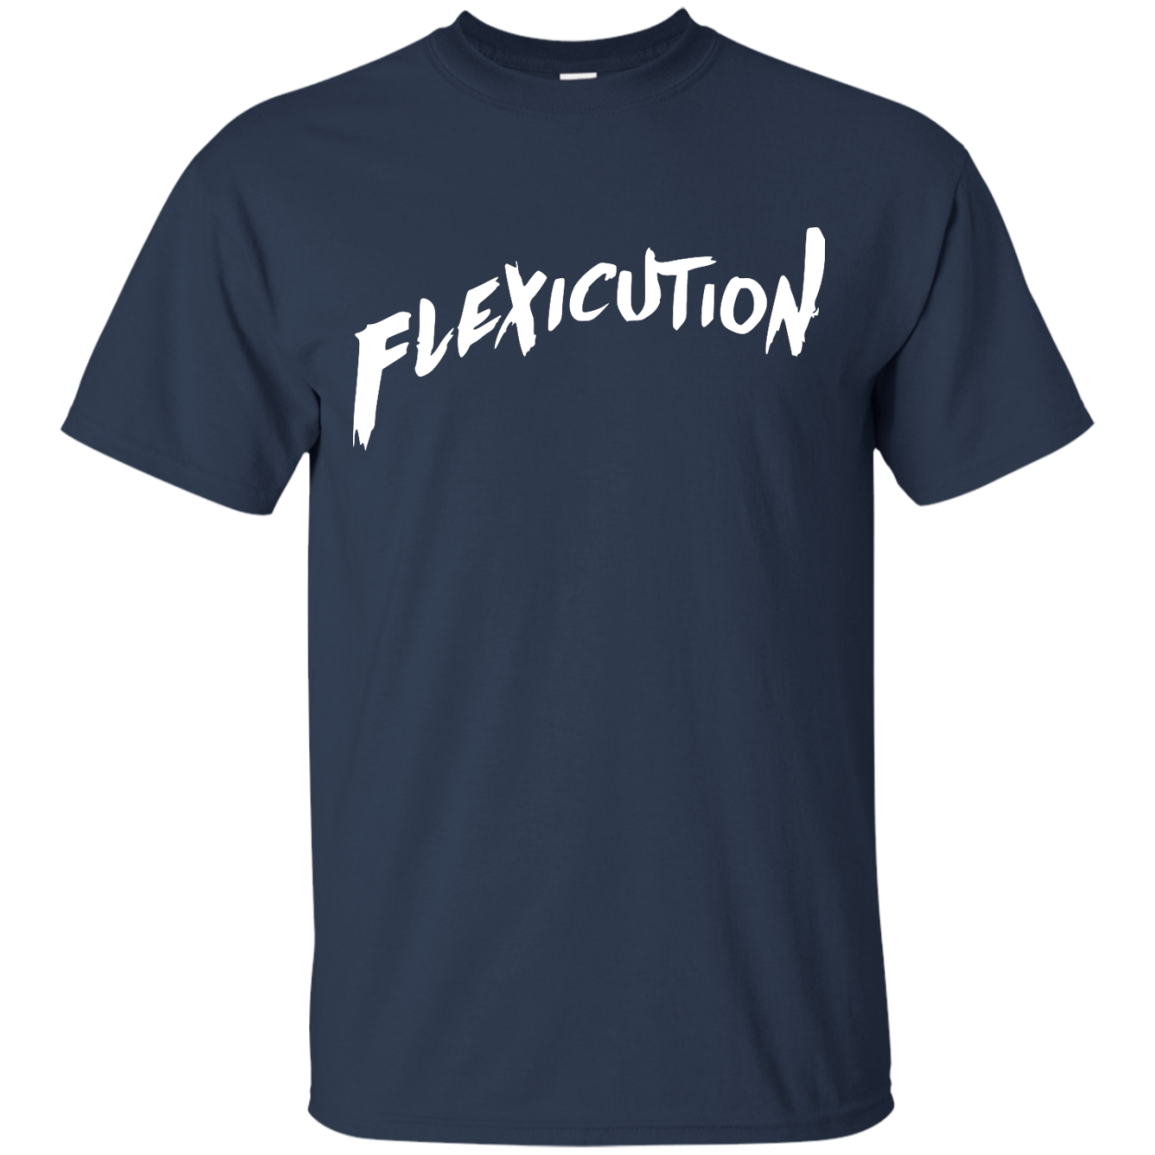 image 532px Flexicution Logic T Shirt, Hoodies, Tank Top